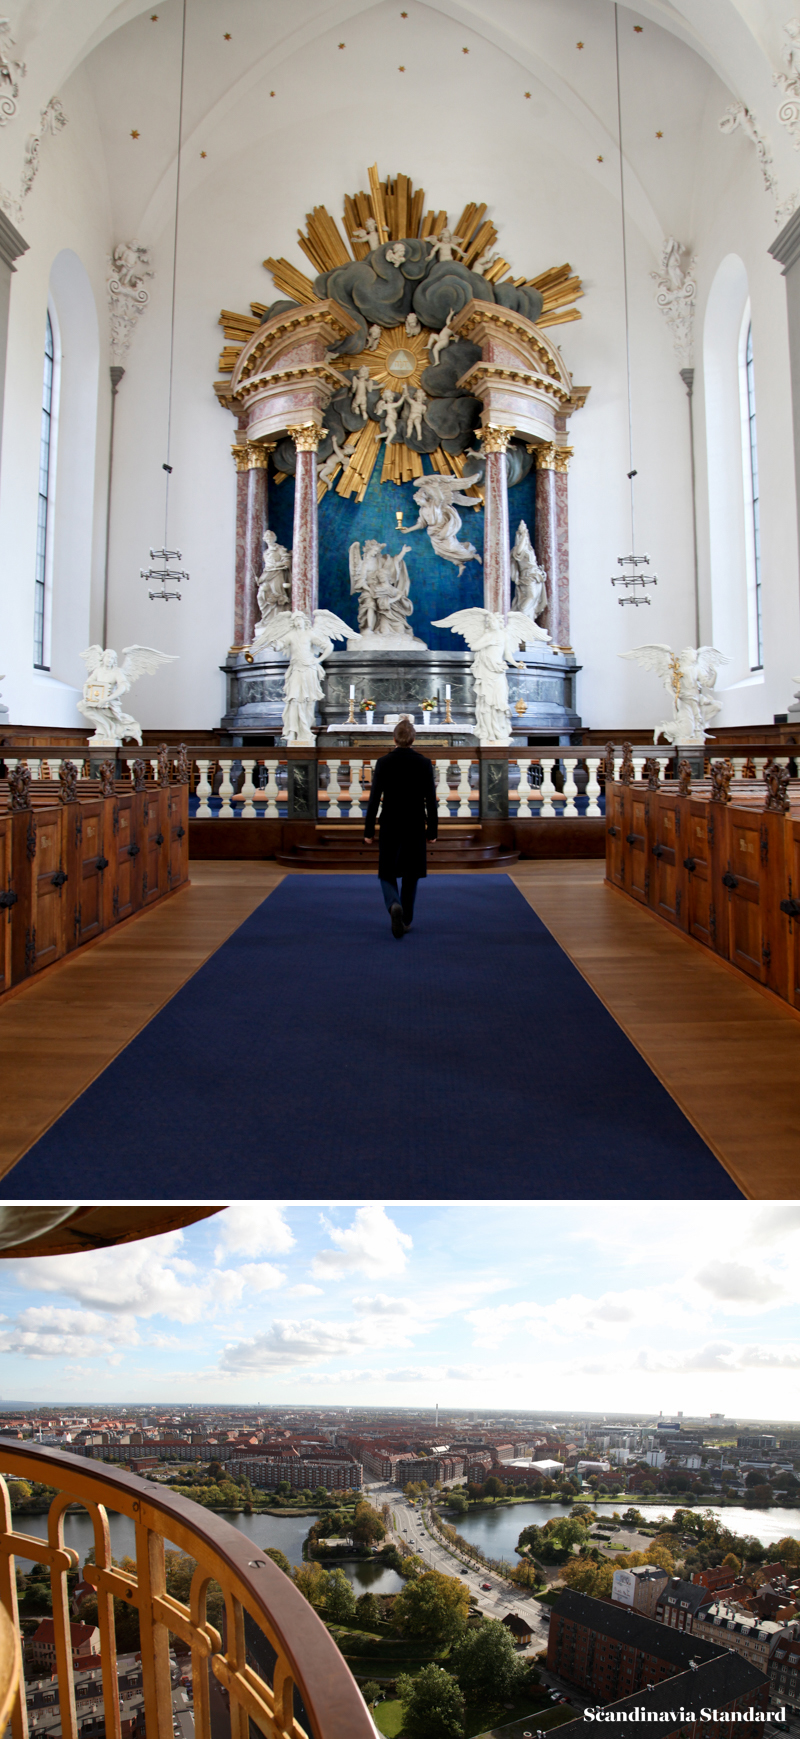 The Church of Our Saviour (Von Frelsers Kirke) | Scandinavia Standard